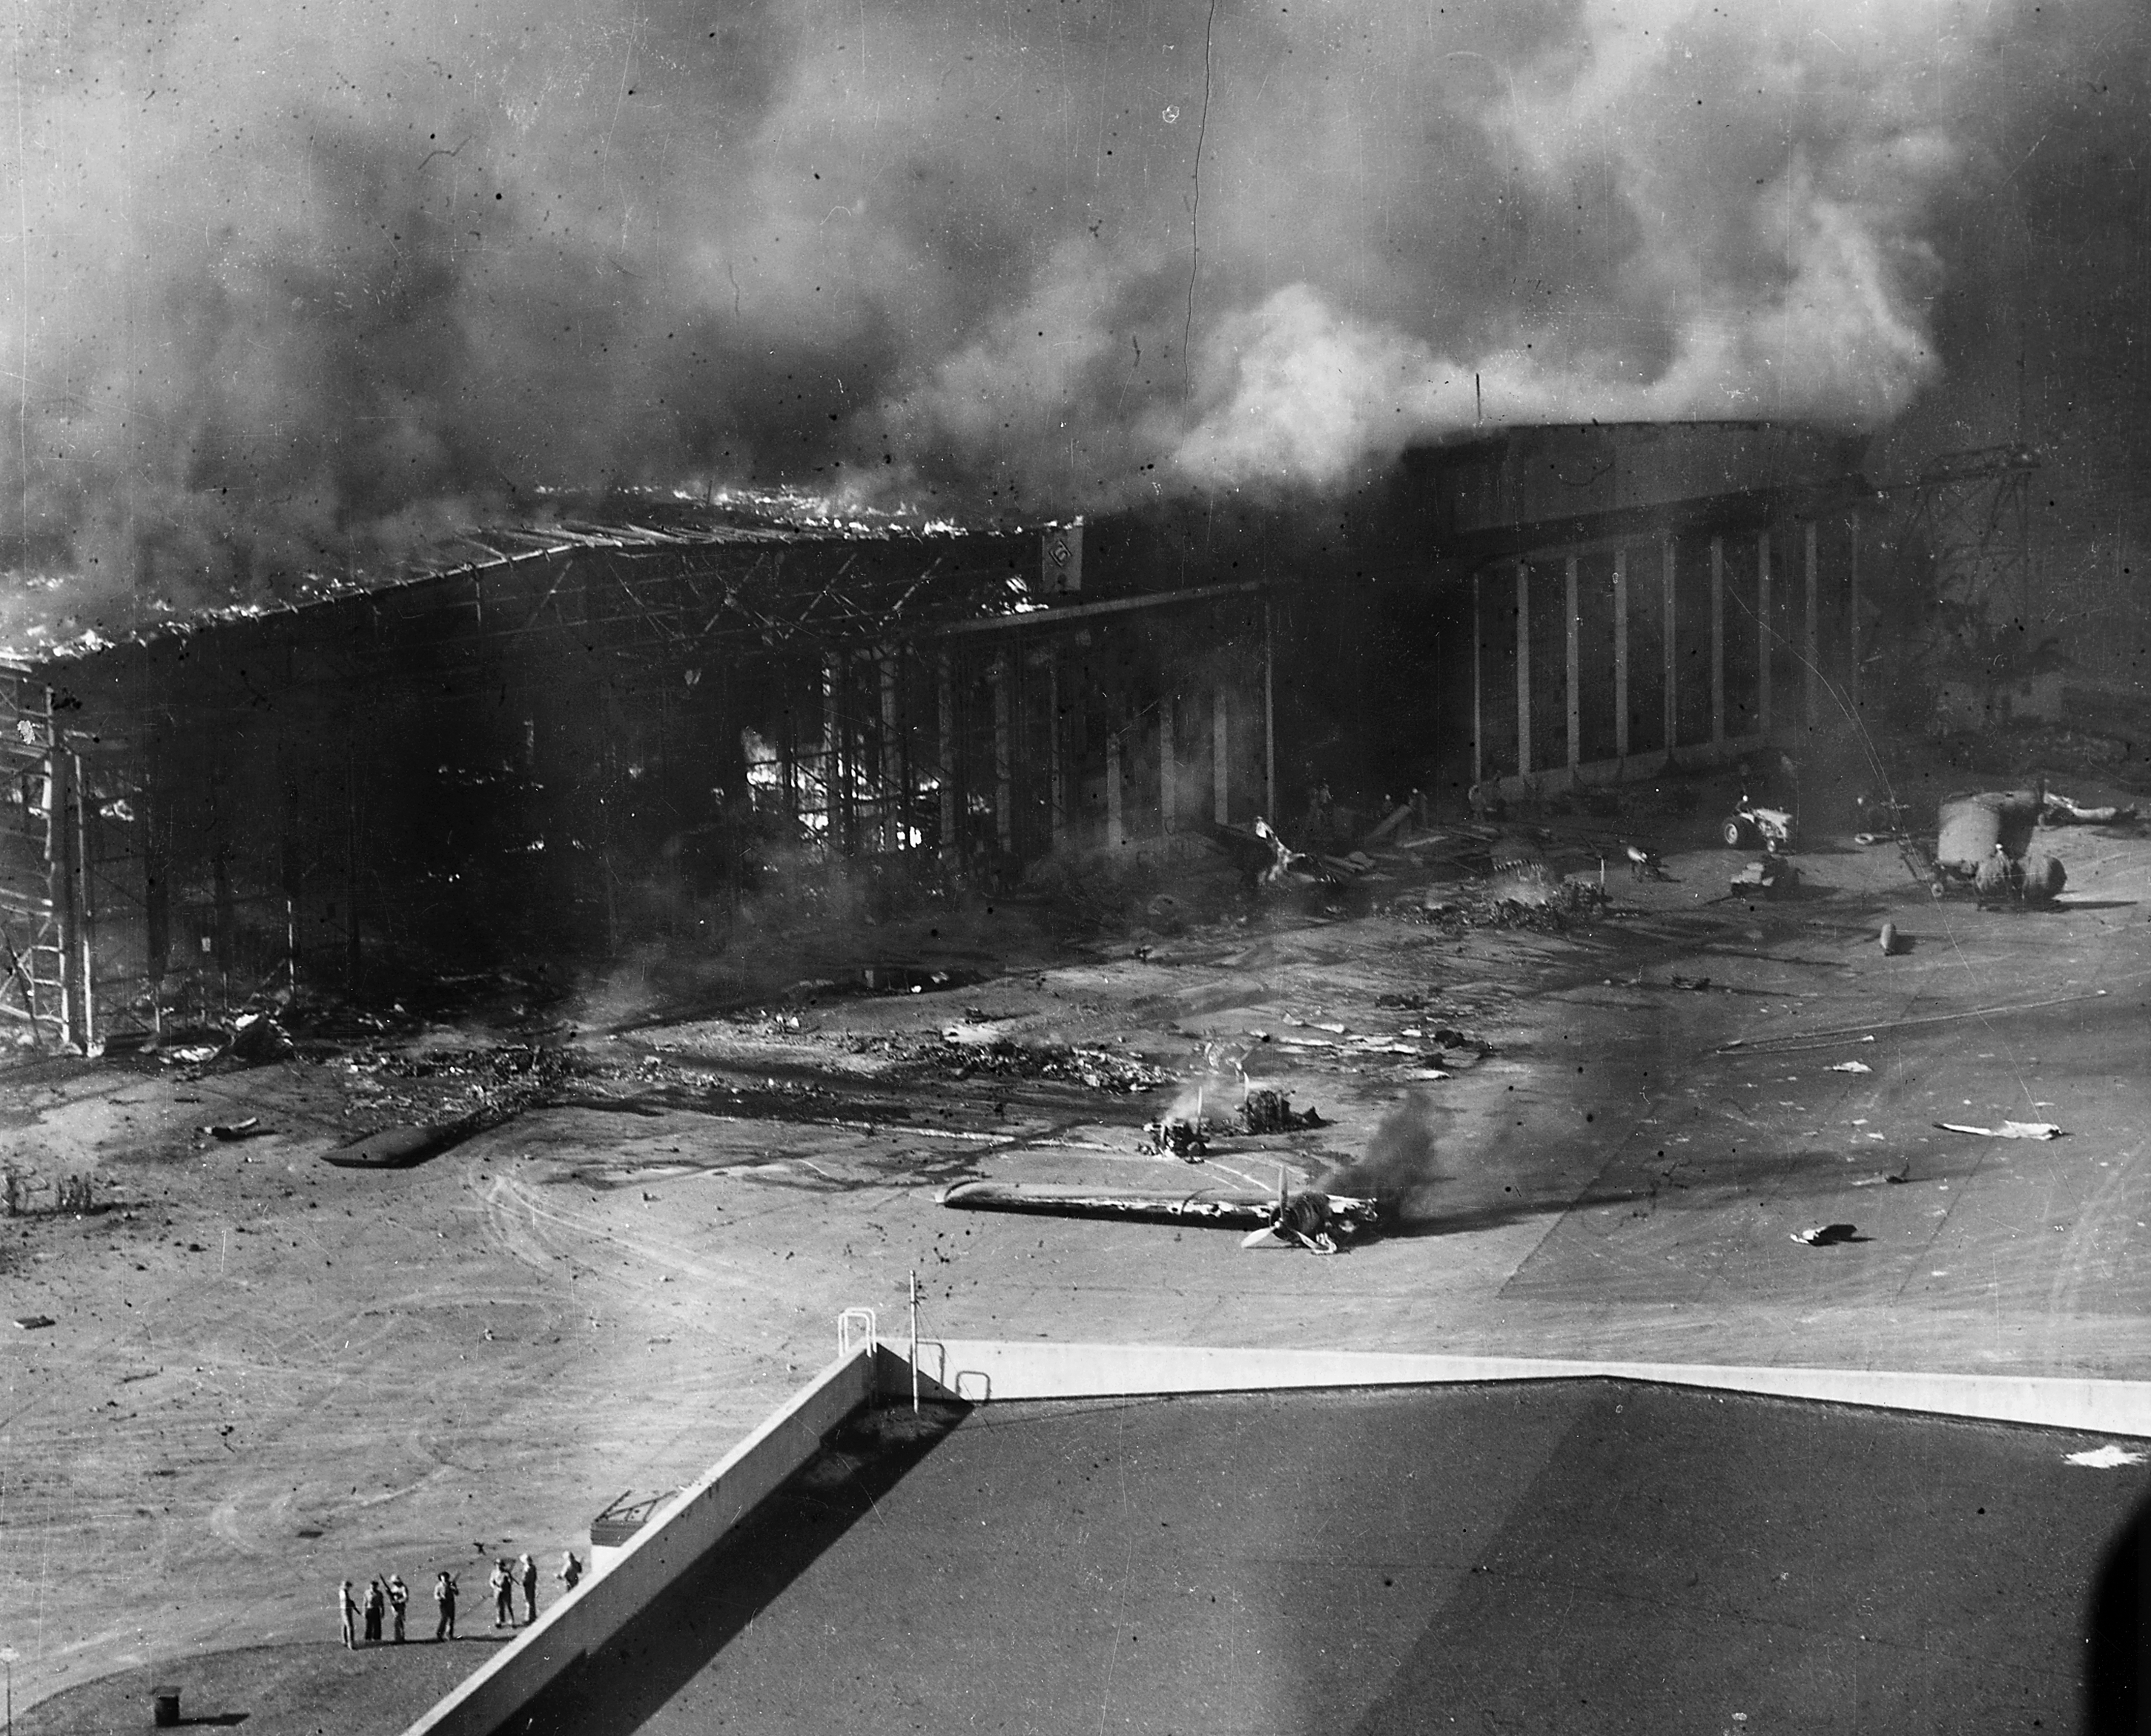 U.S. Navy planes and a hangar burning at the Ford Island Naval Air Station's seaplane base, during or immediately after the Japanese air raid on Pearl Harbor, Hawaii (USA), on 7 December 1941. The ruined wings of a Consolidated PBY Catalina patrol plane are at left and in the center. Note men with rifles standing in the lower left.